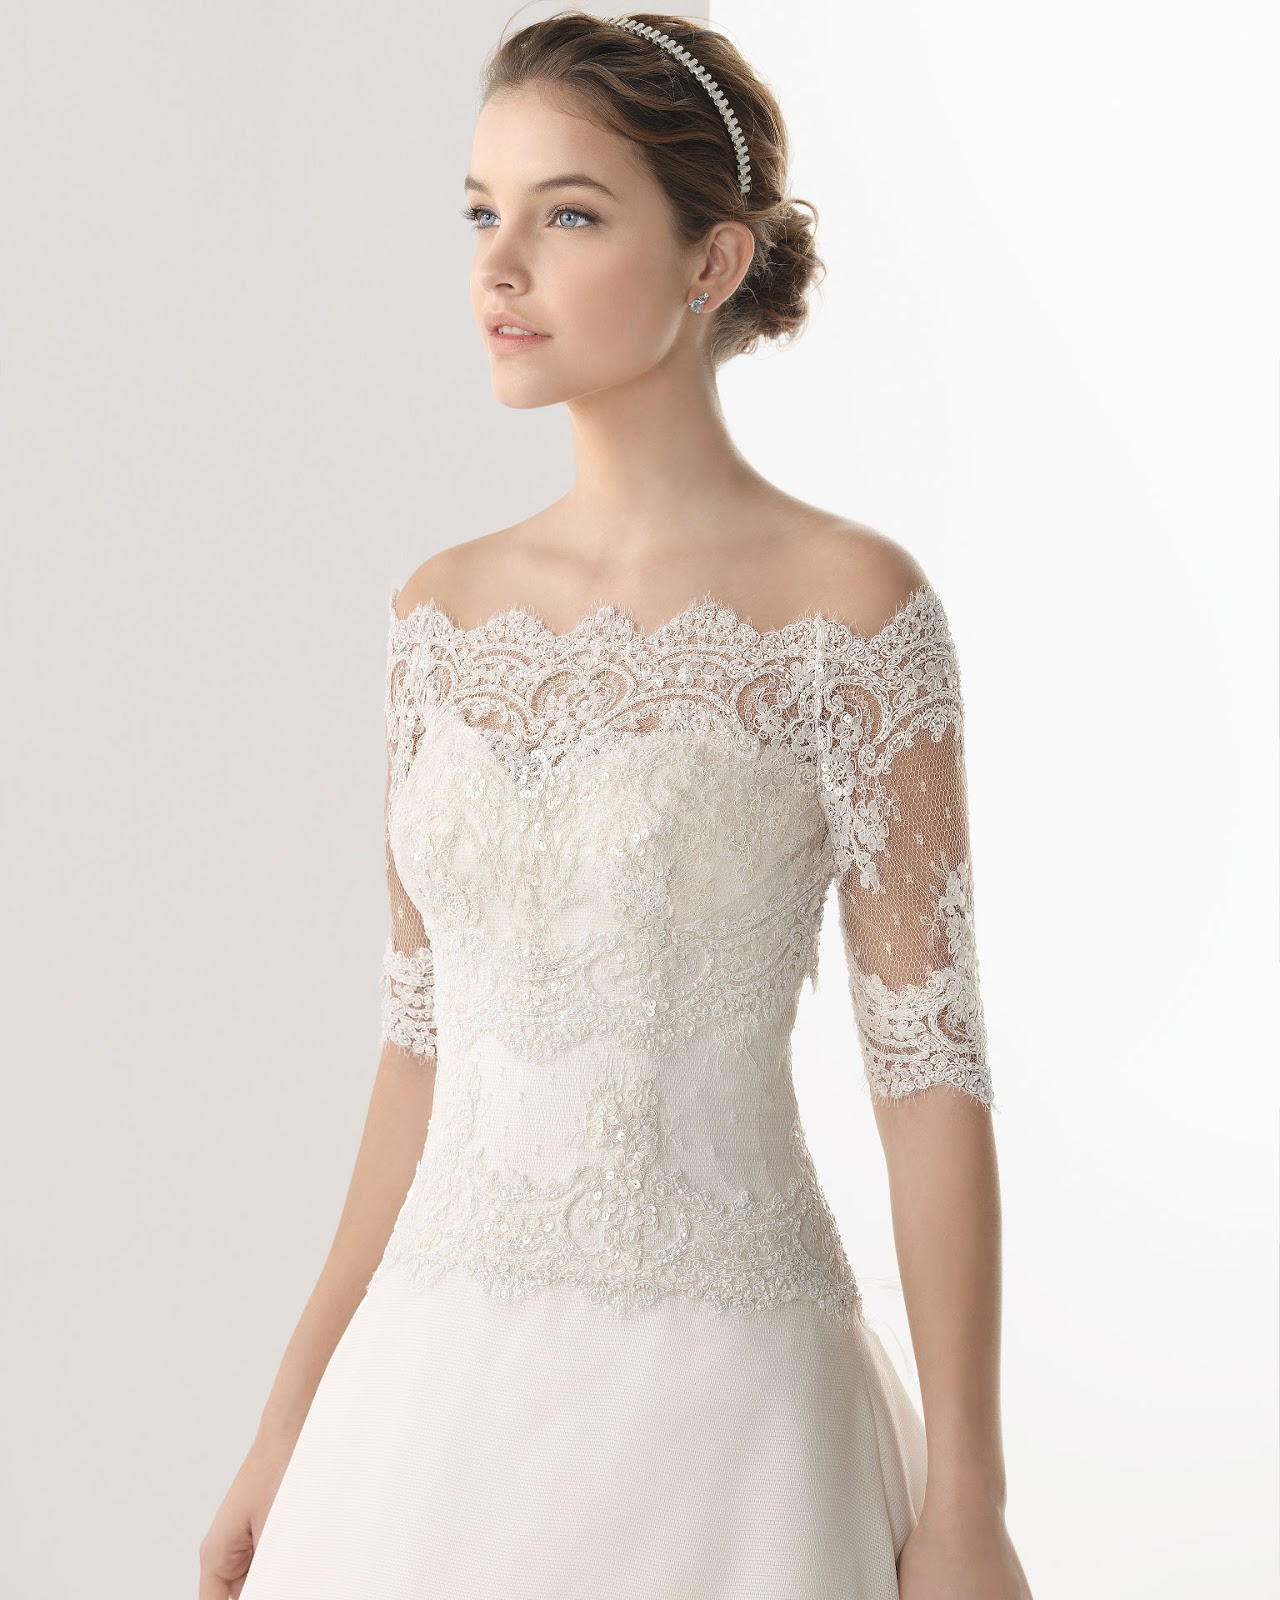 Lace Wedding Dresses For   On Bidorbuy : Dressybridal wedding dresses with lace long sleeves and illusion